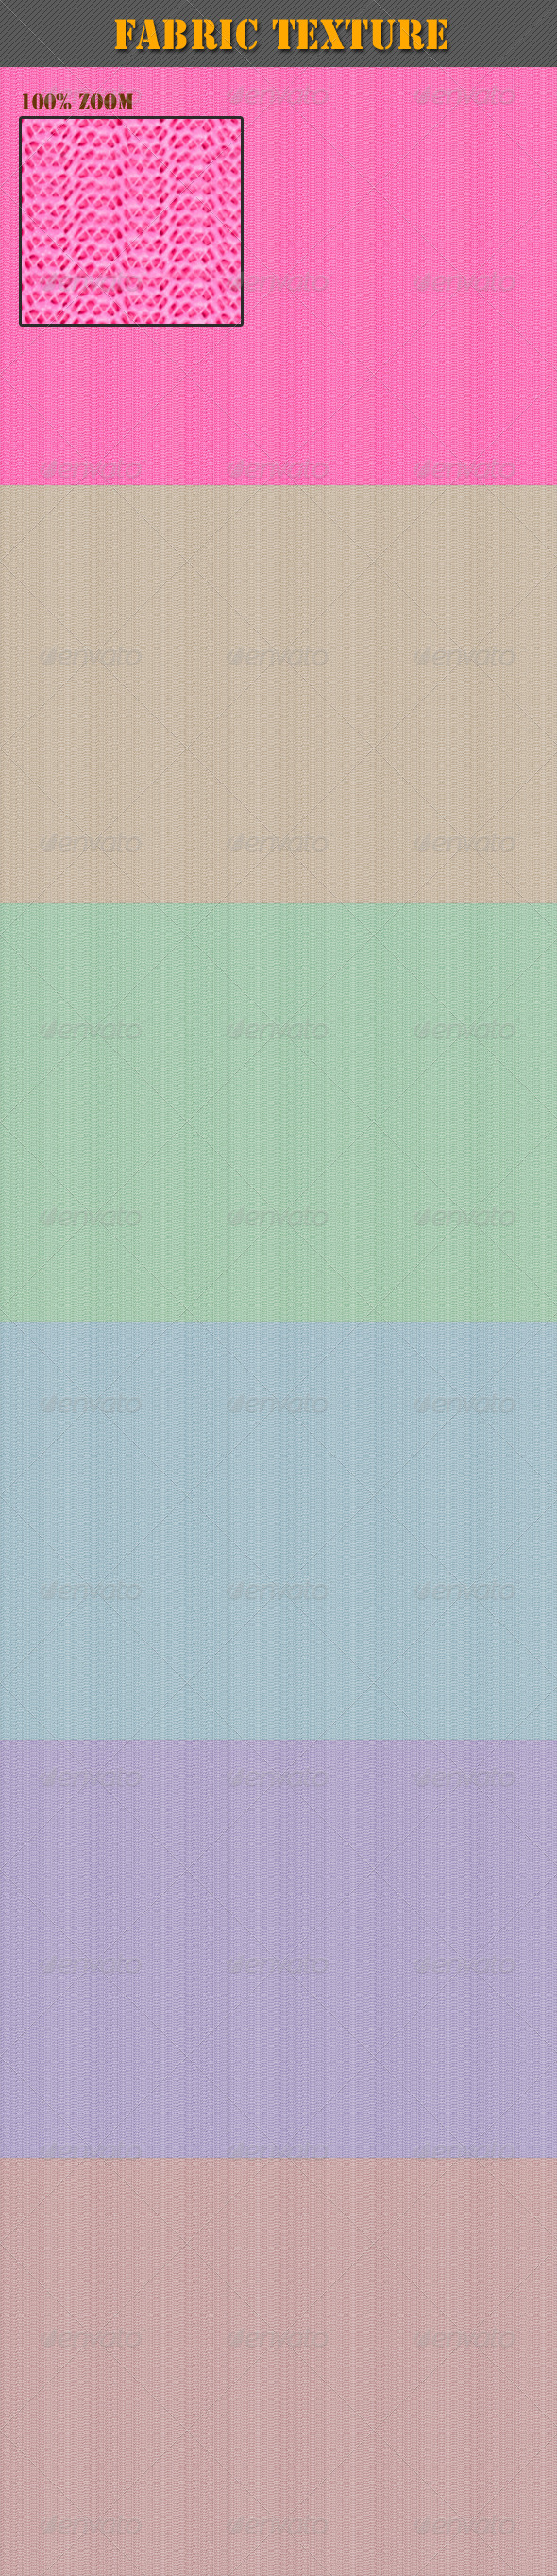 GraphicRiver Fabric Texure 4801585